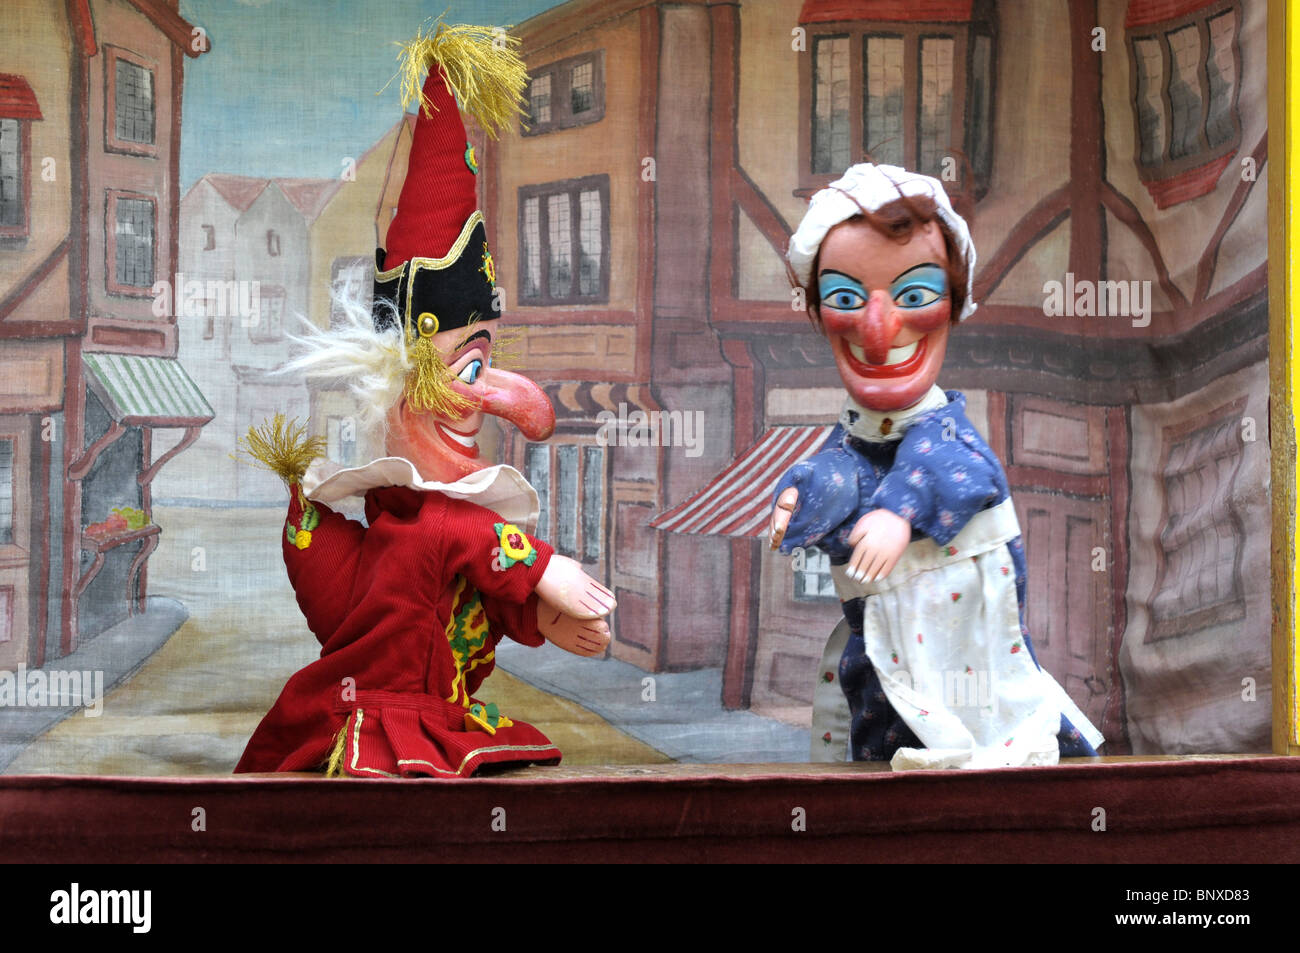 Punch Judy In The Festival At St Paul 39 S Church In Covent Garden Stock Photo 30699315 Alamy